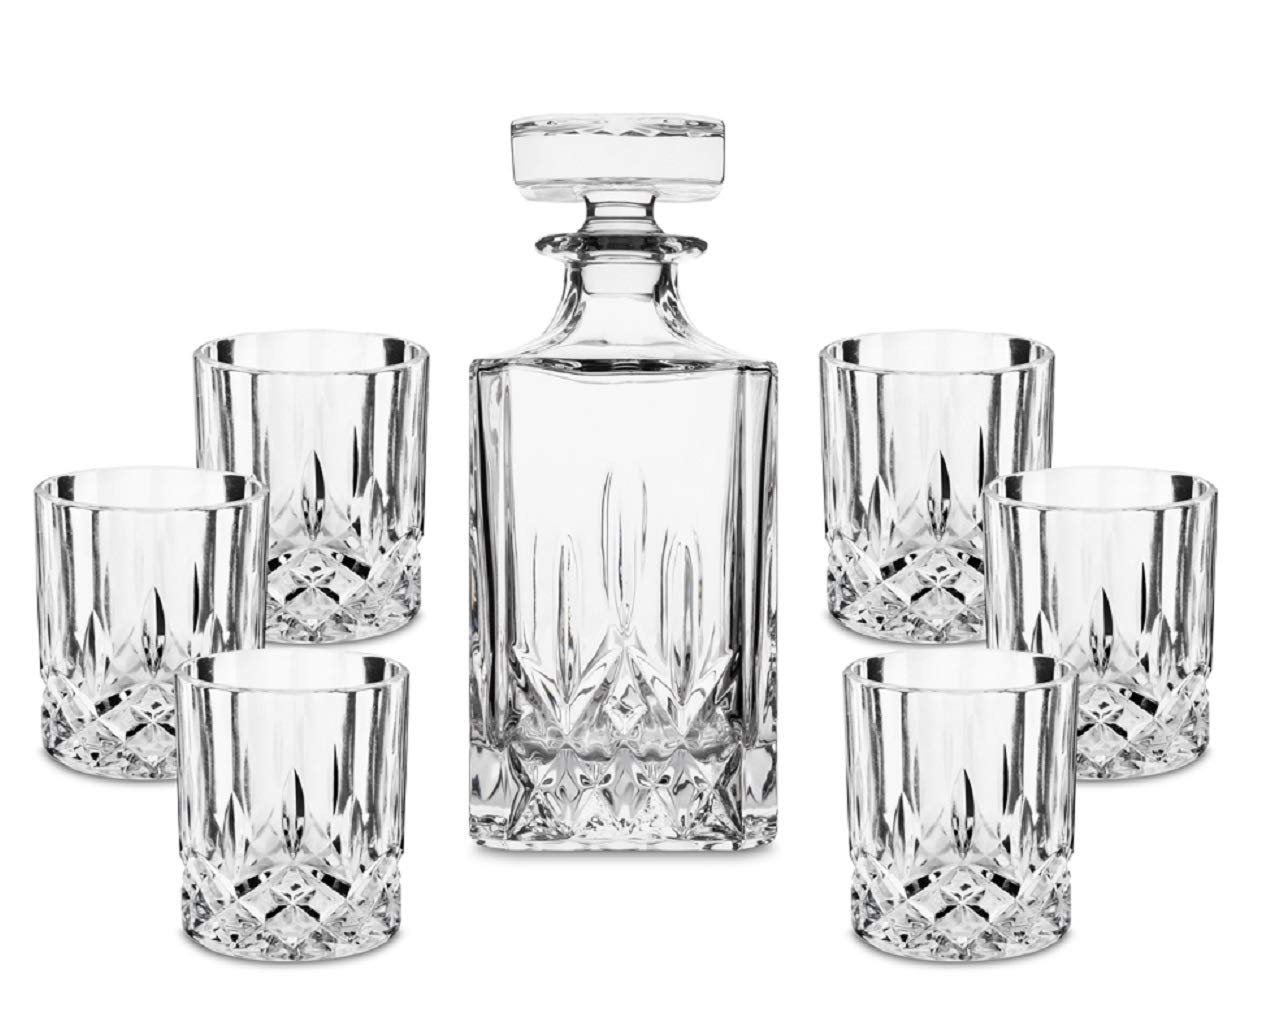 LANFULA 7- Piece Crystal Whiskey Decanter Set, Premium Quality Liquor Decanter with 6 Scotch Glasses for Bourbon, Irish whisky and Alcohol, Ideal Gift for Wedding/Anniversary